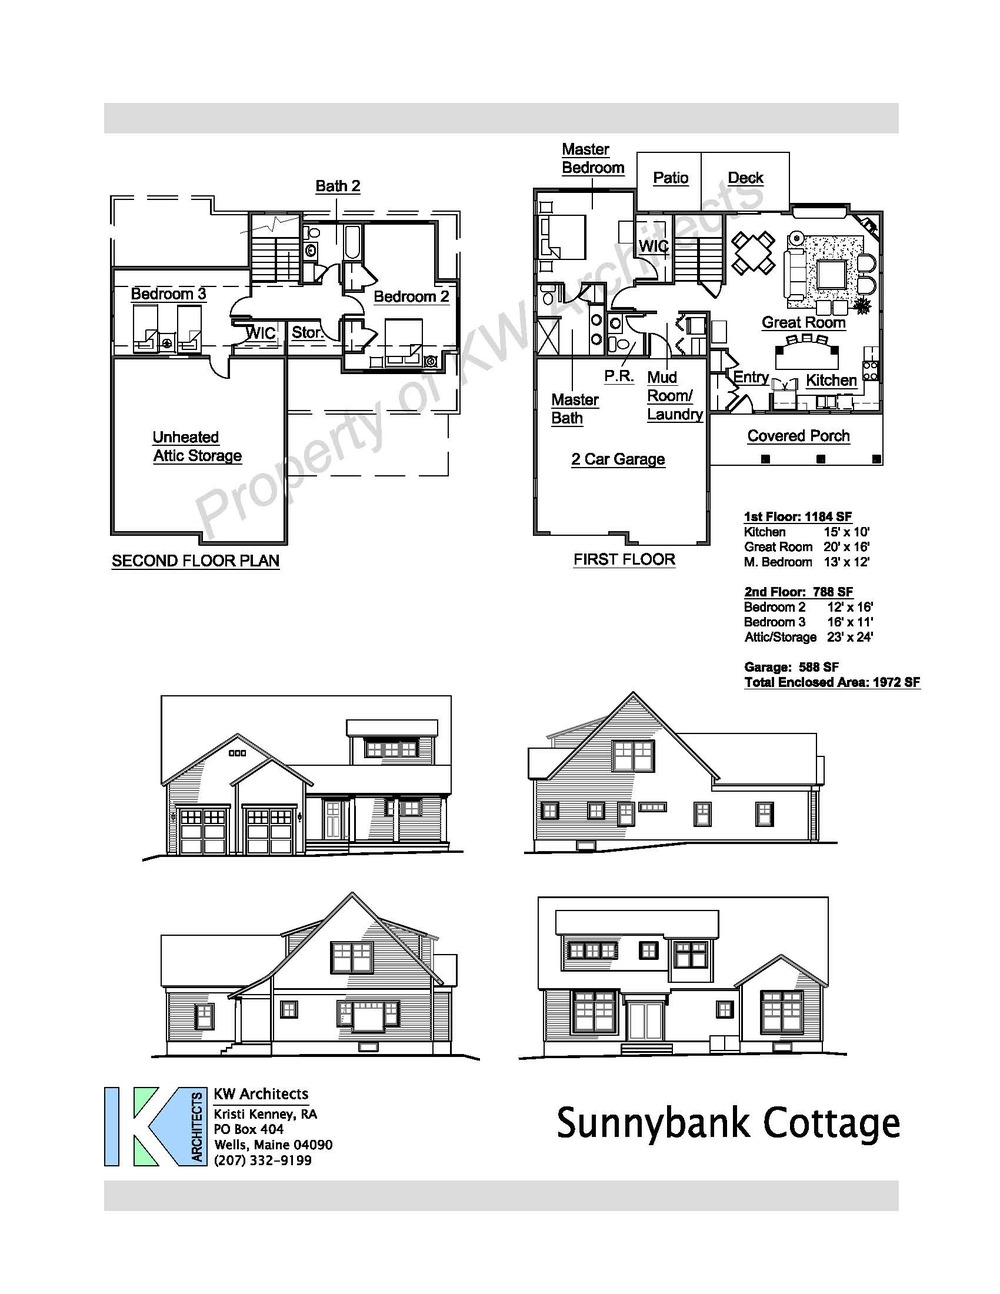 Sunnybank Cottage.jpg